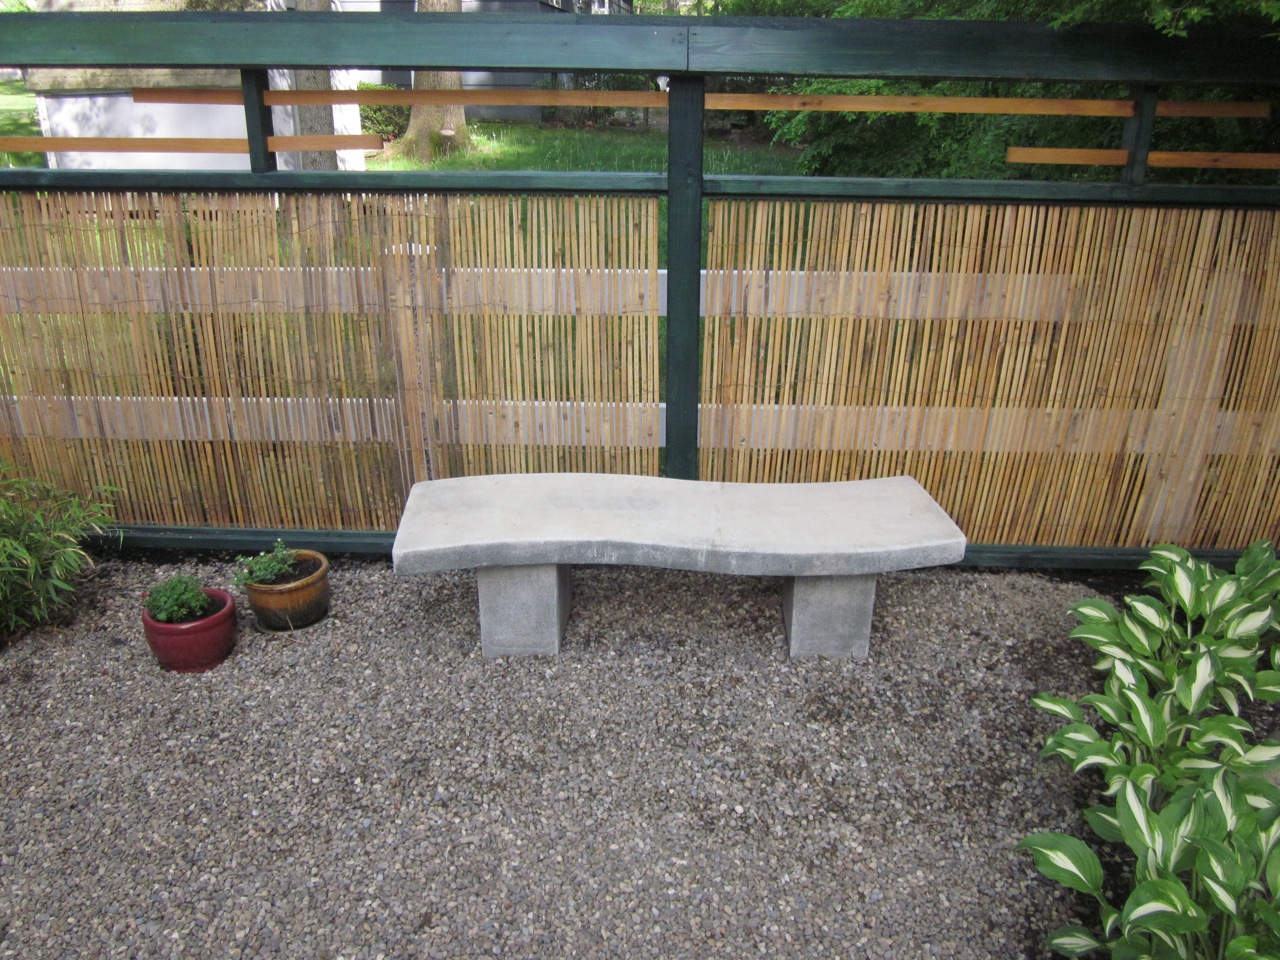 My Zen Garden: S-Shaped Bench